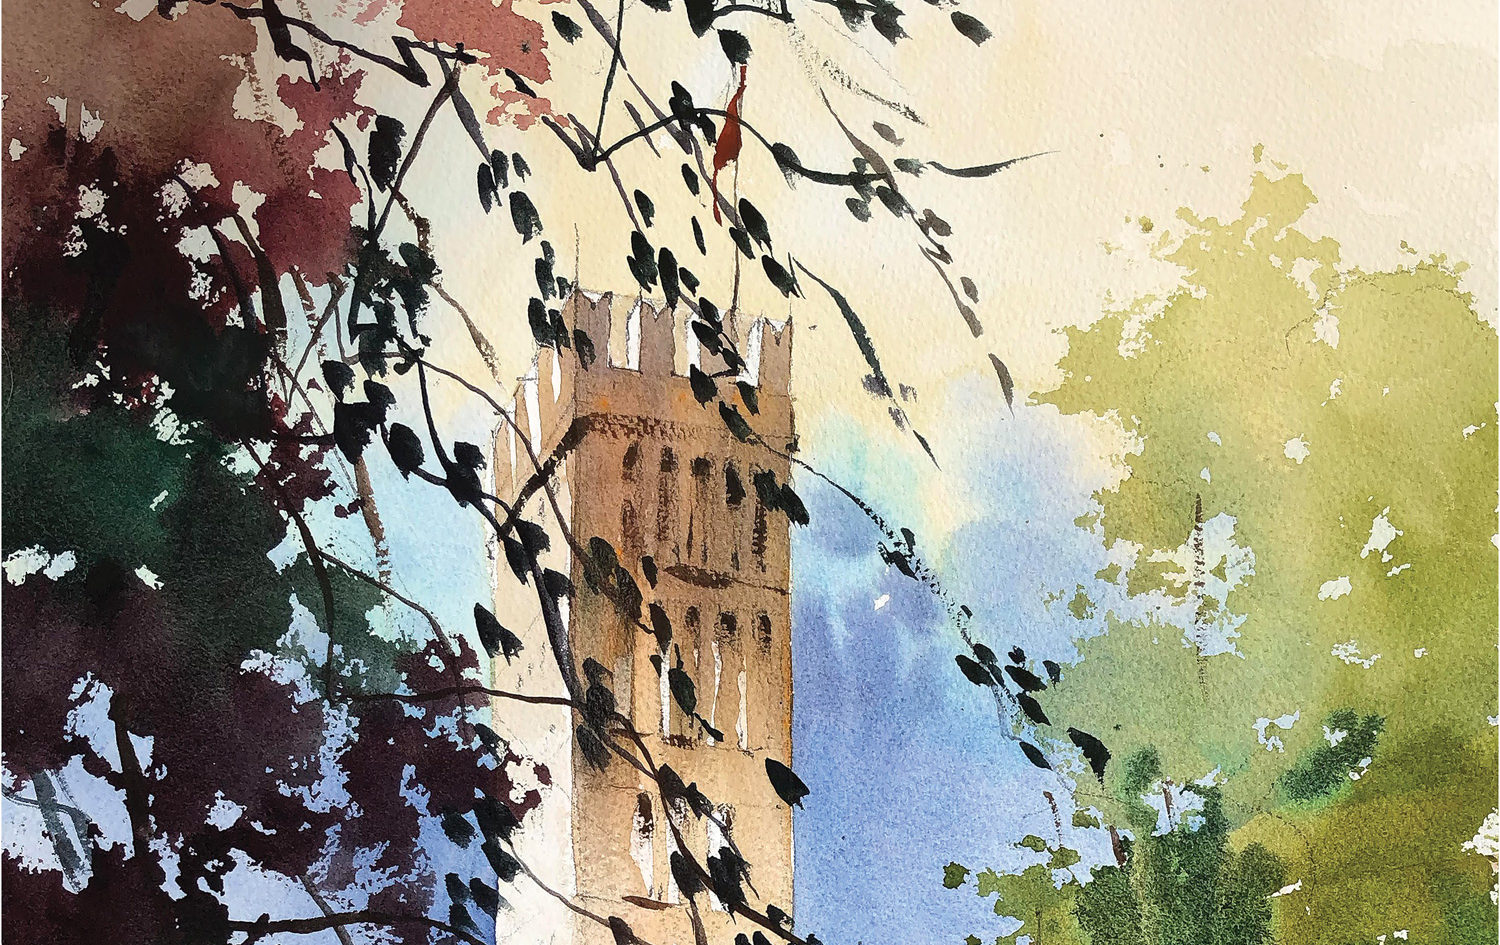 Cathedral of San Martino, Lucca, Italy by Thomas Schaller, watercolor on paper, 22x15